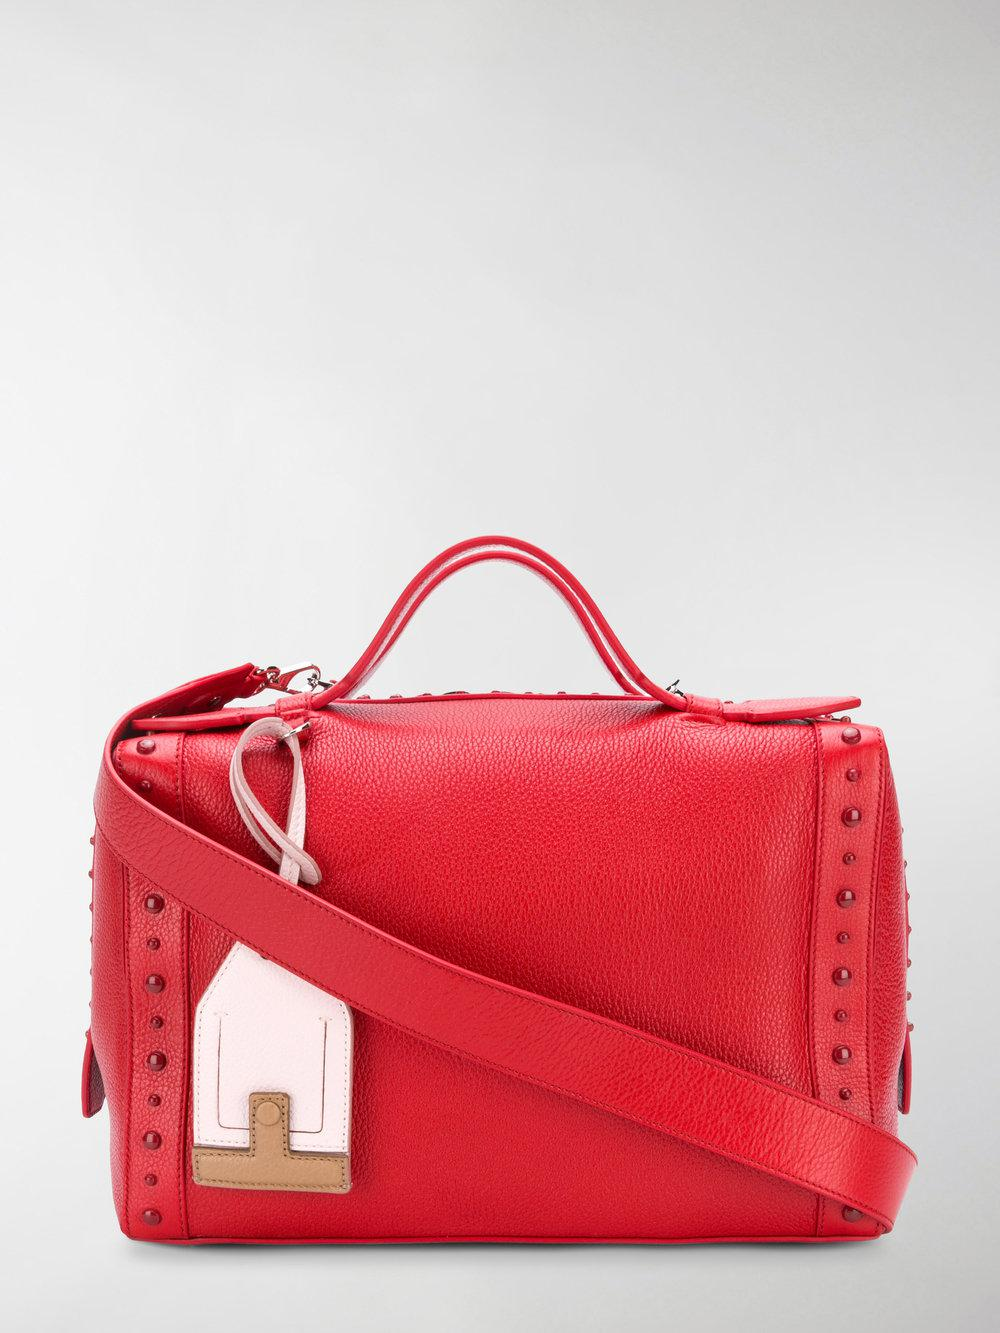 ad91728ac18d Lyst - Tod S Gommino Medium Bag in Red